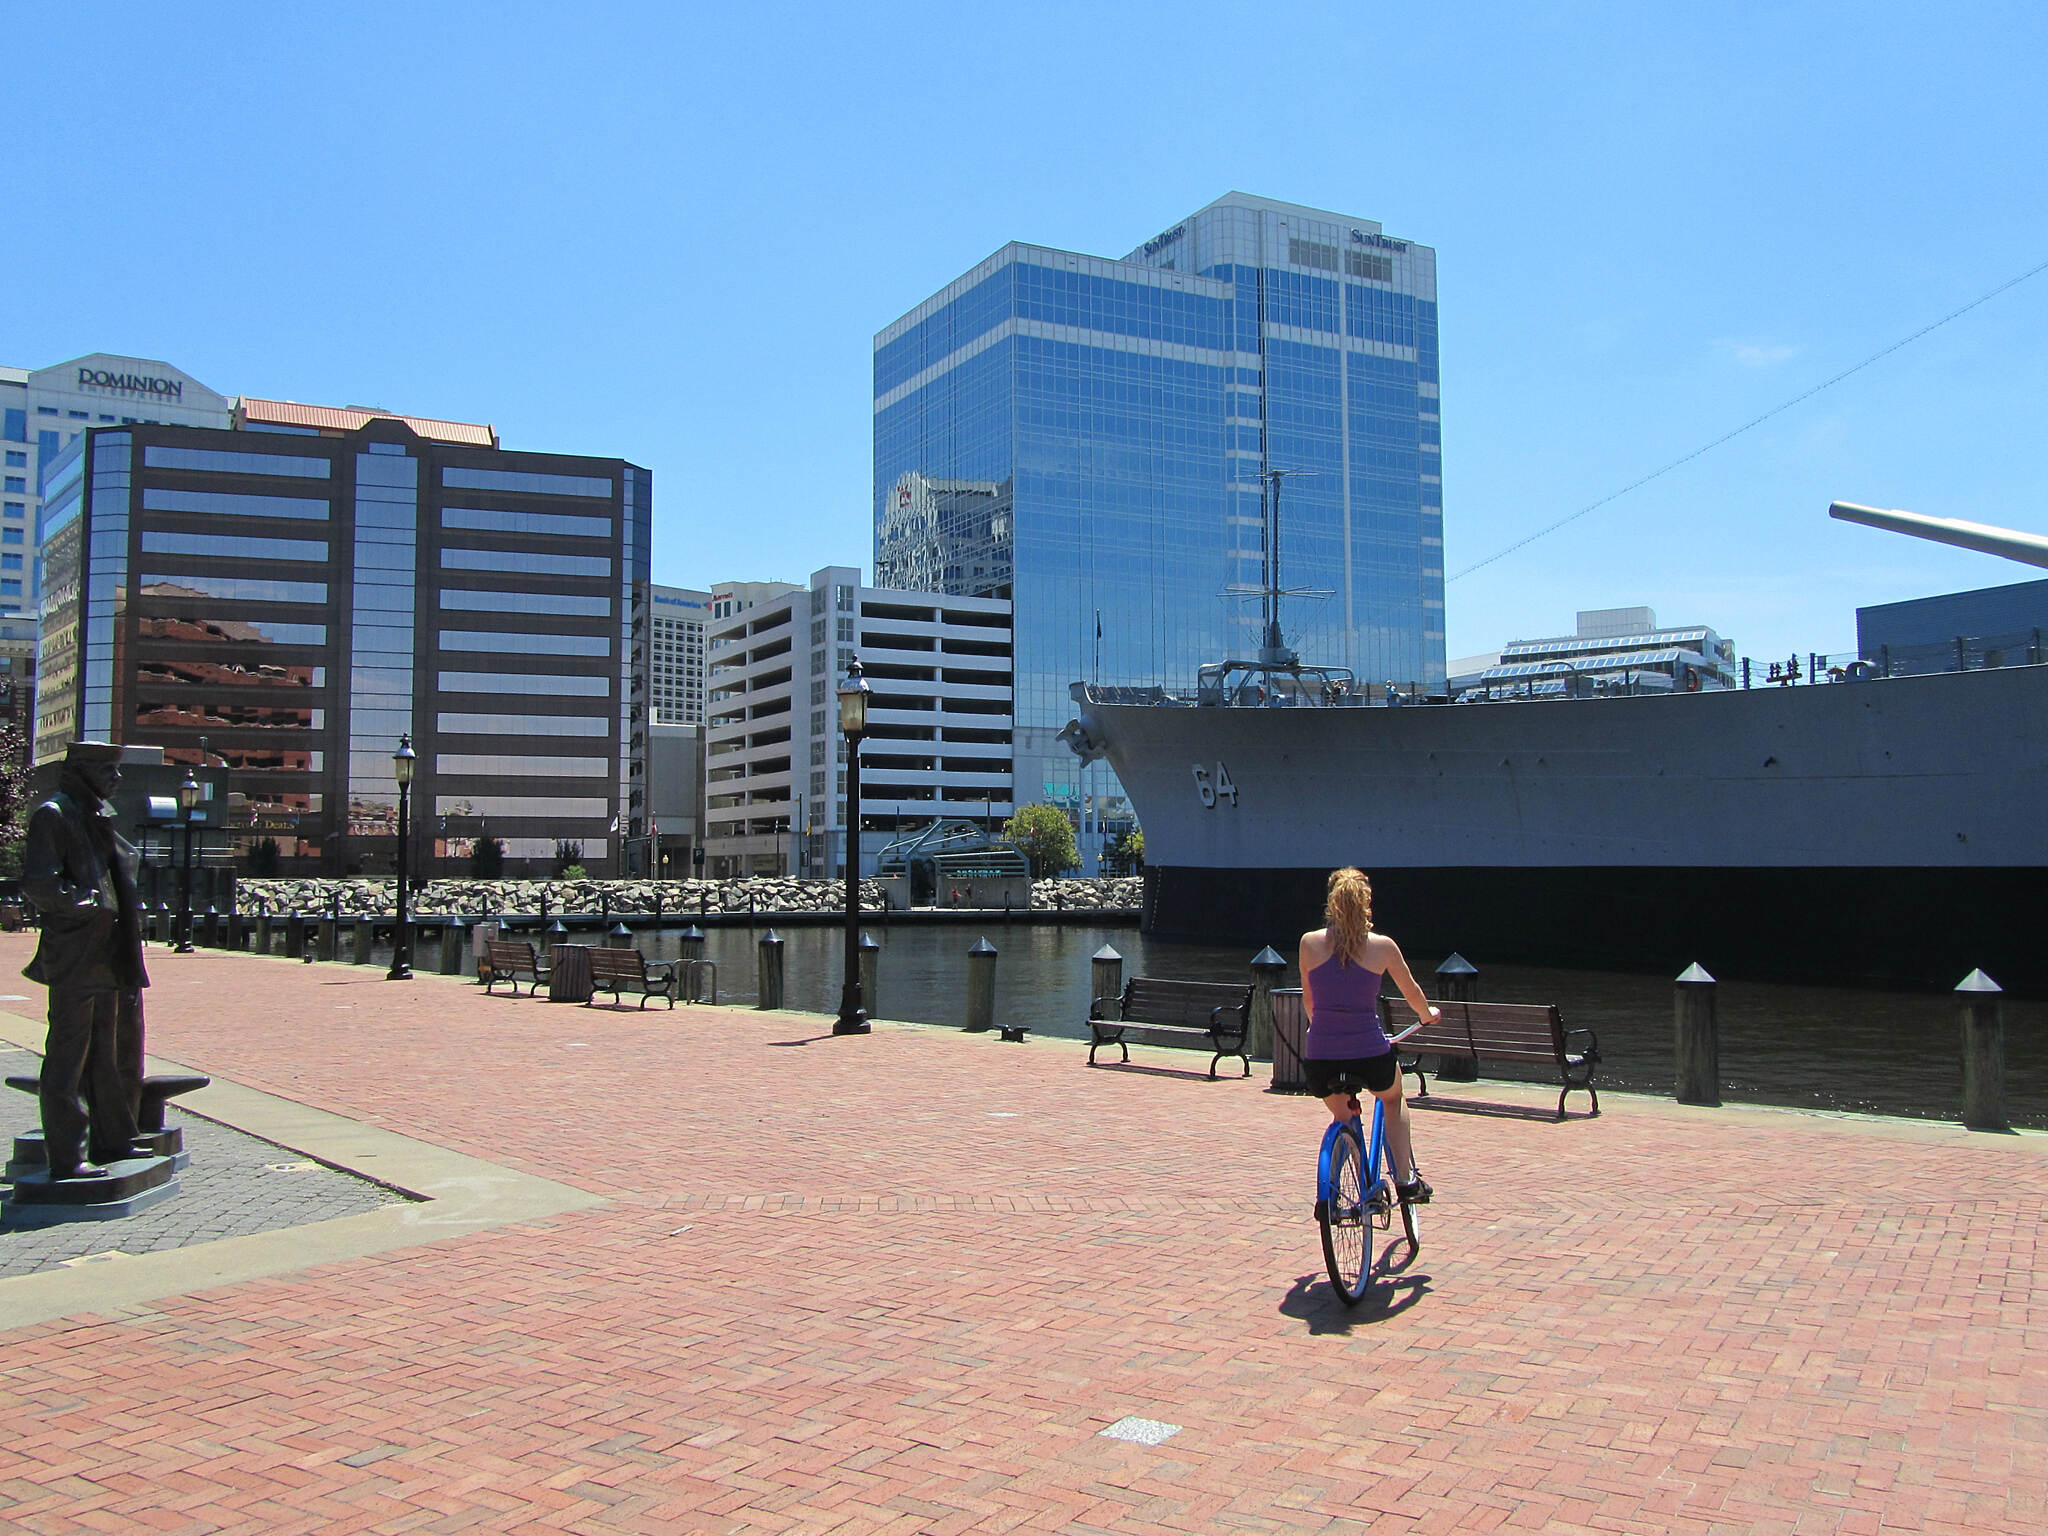 Elizabeth River Trail (Atlantic City Spur) Great views! Great views of the USS Wisconsin and Downtown from the trail!